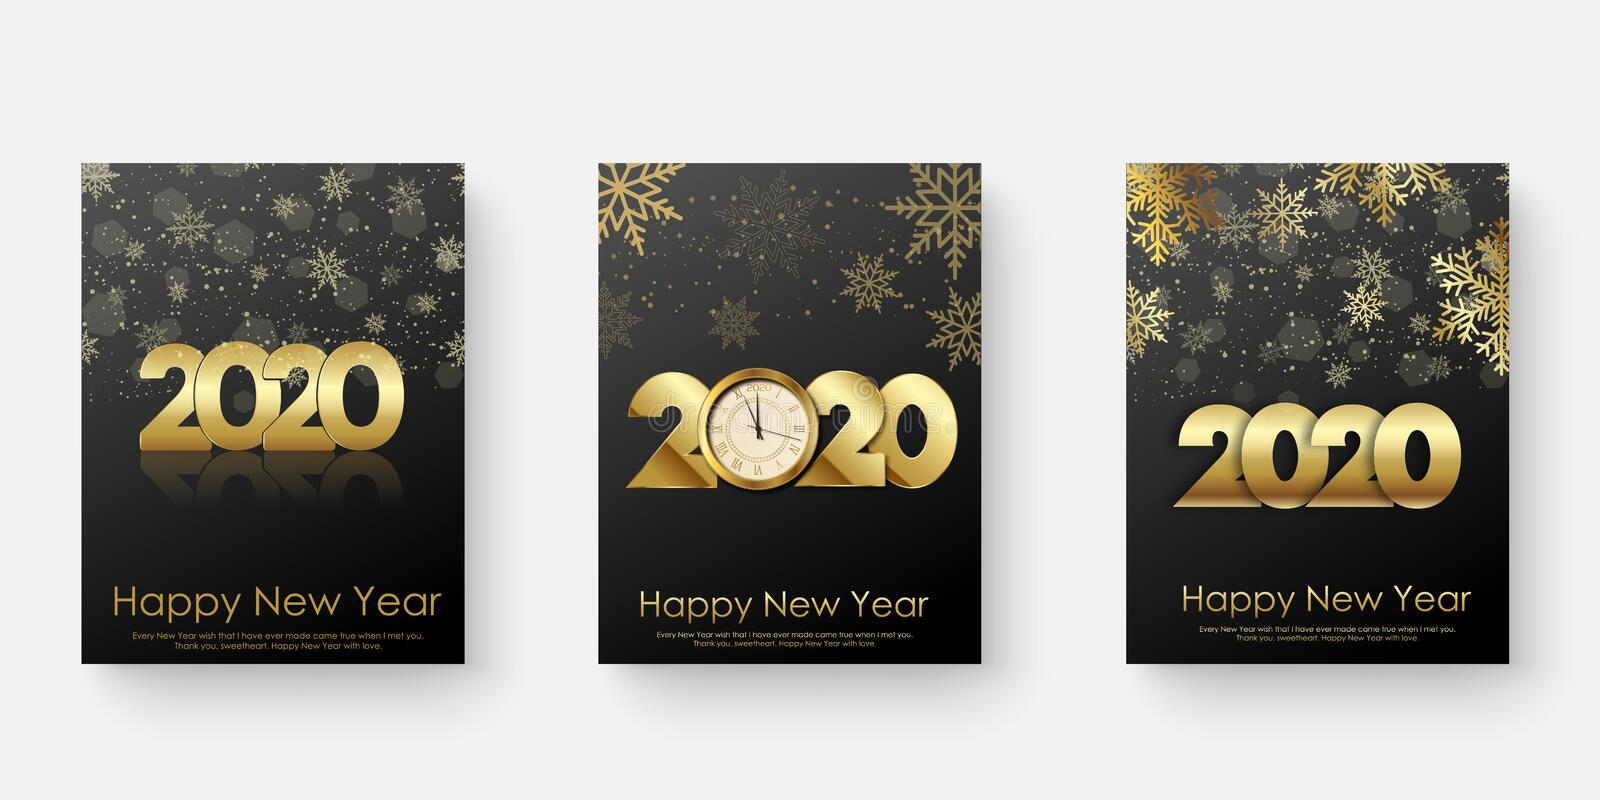 Happy 2020 Year cards set with Xmas ornaments. Vector illustration.  royalty free illustration